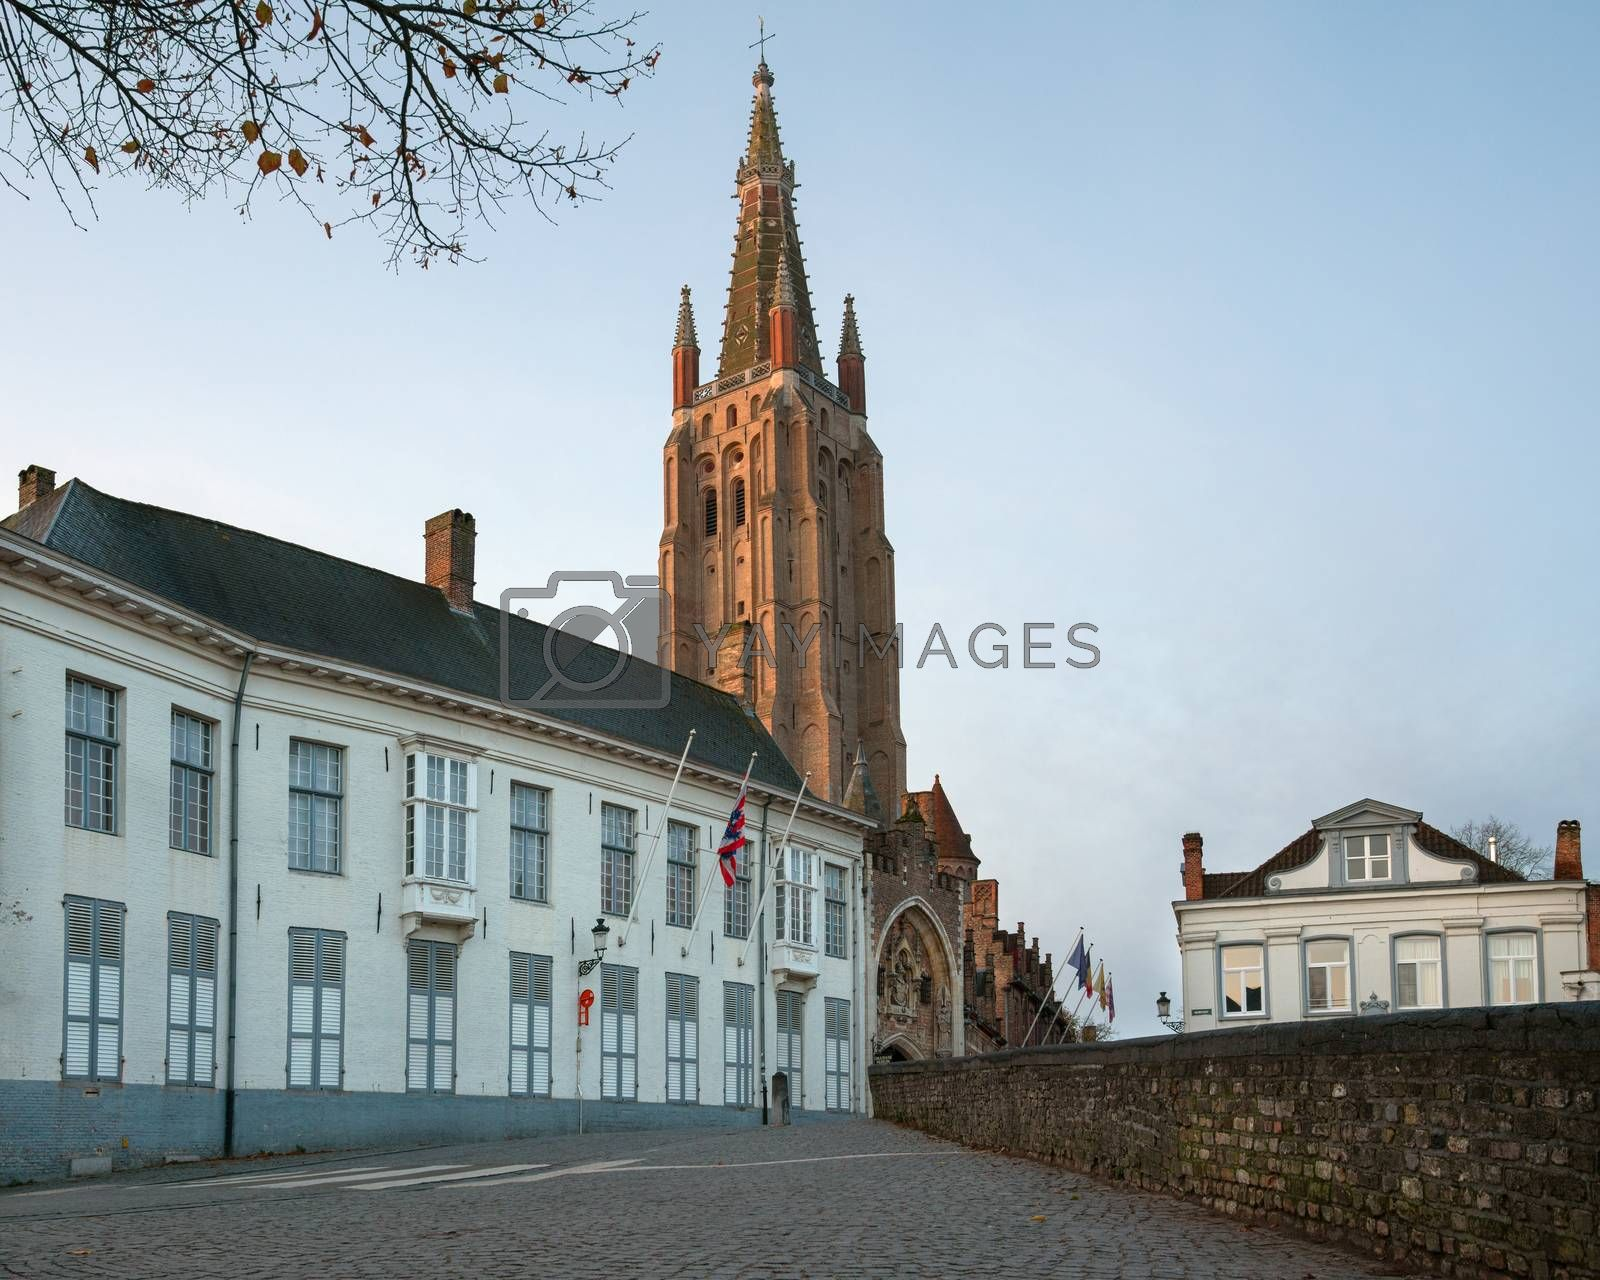 Street onto the church of our Lady, historic city of Bruges, Belgium